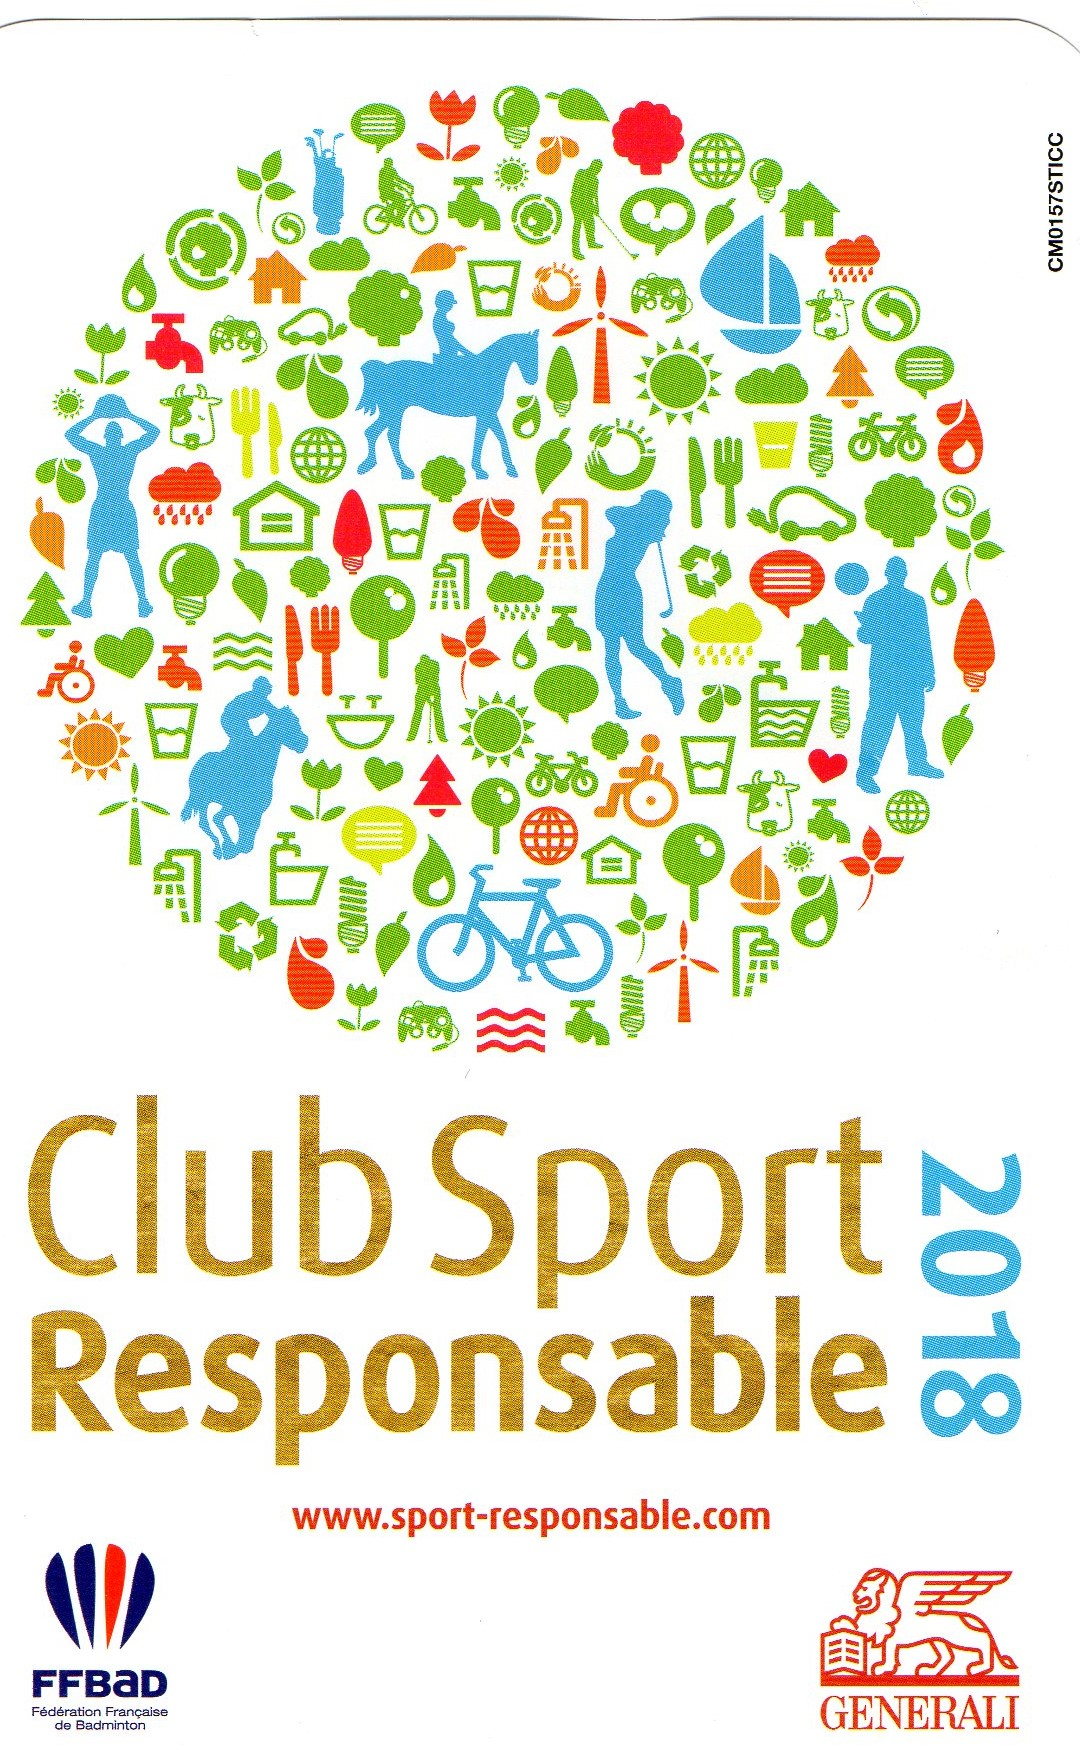 Label sport responsable 2018